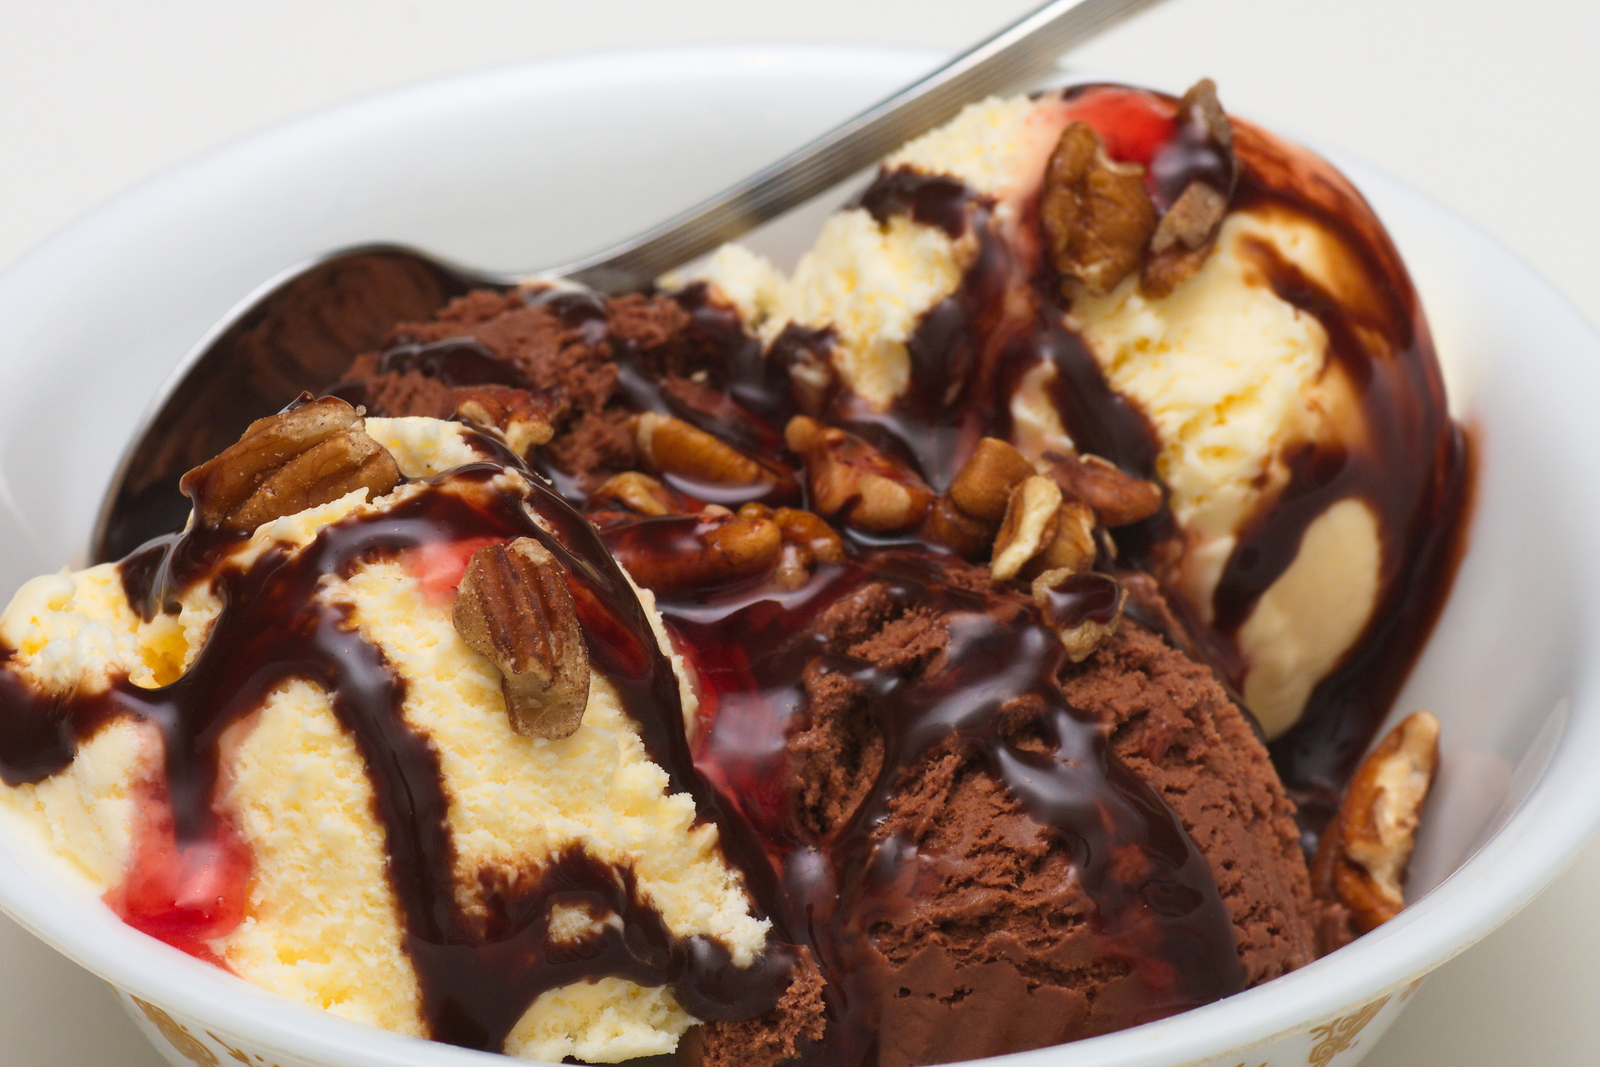 bigstock-Chocolate-And-Vanilla-Sundae-17